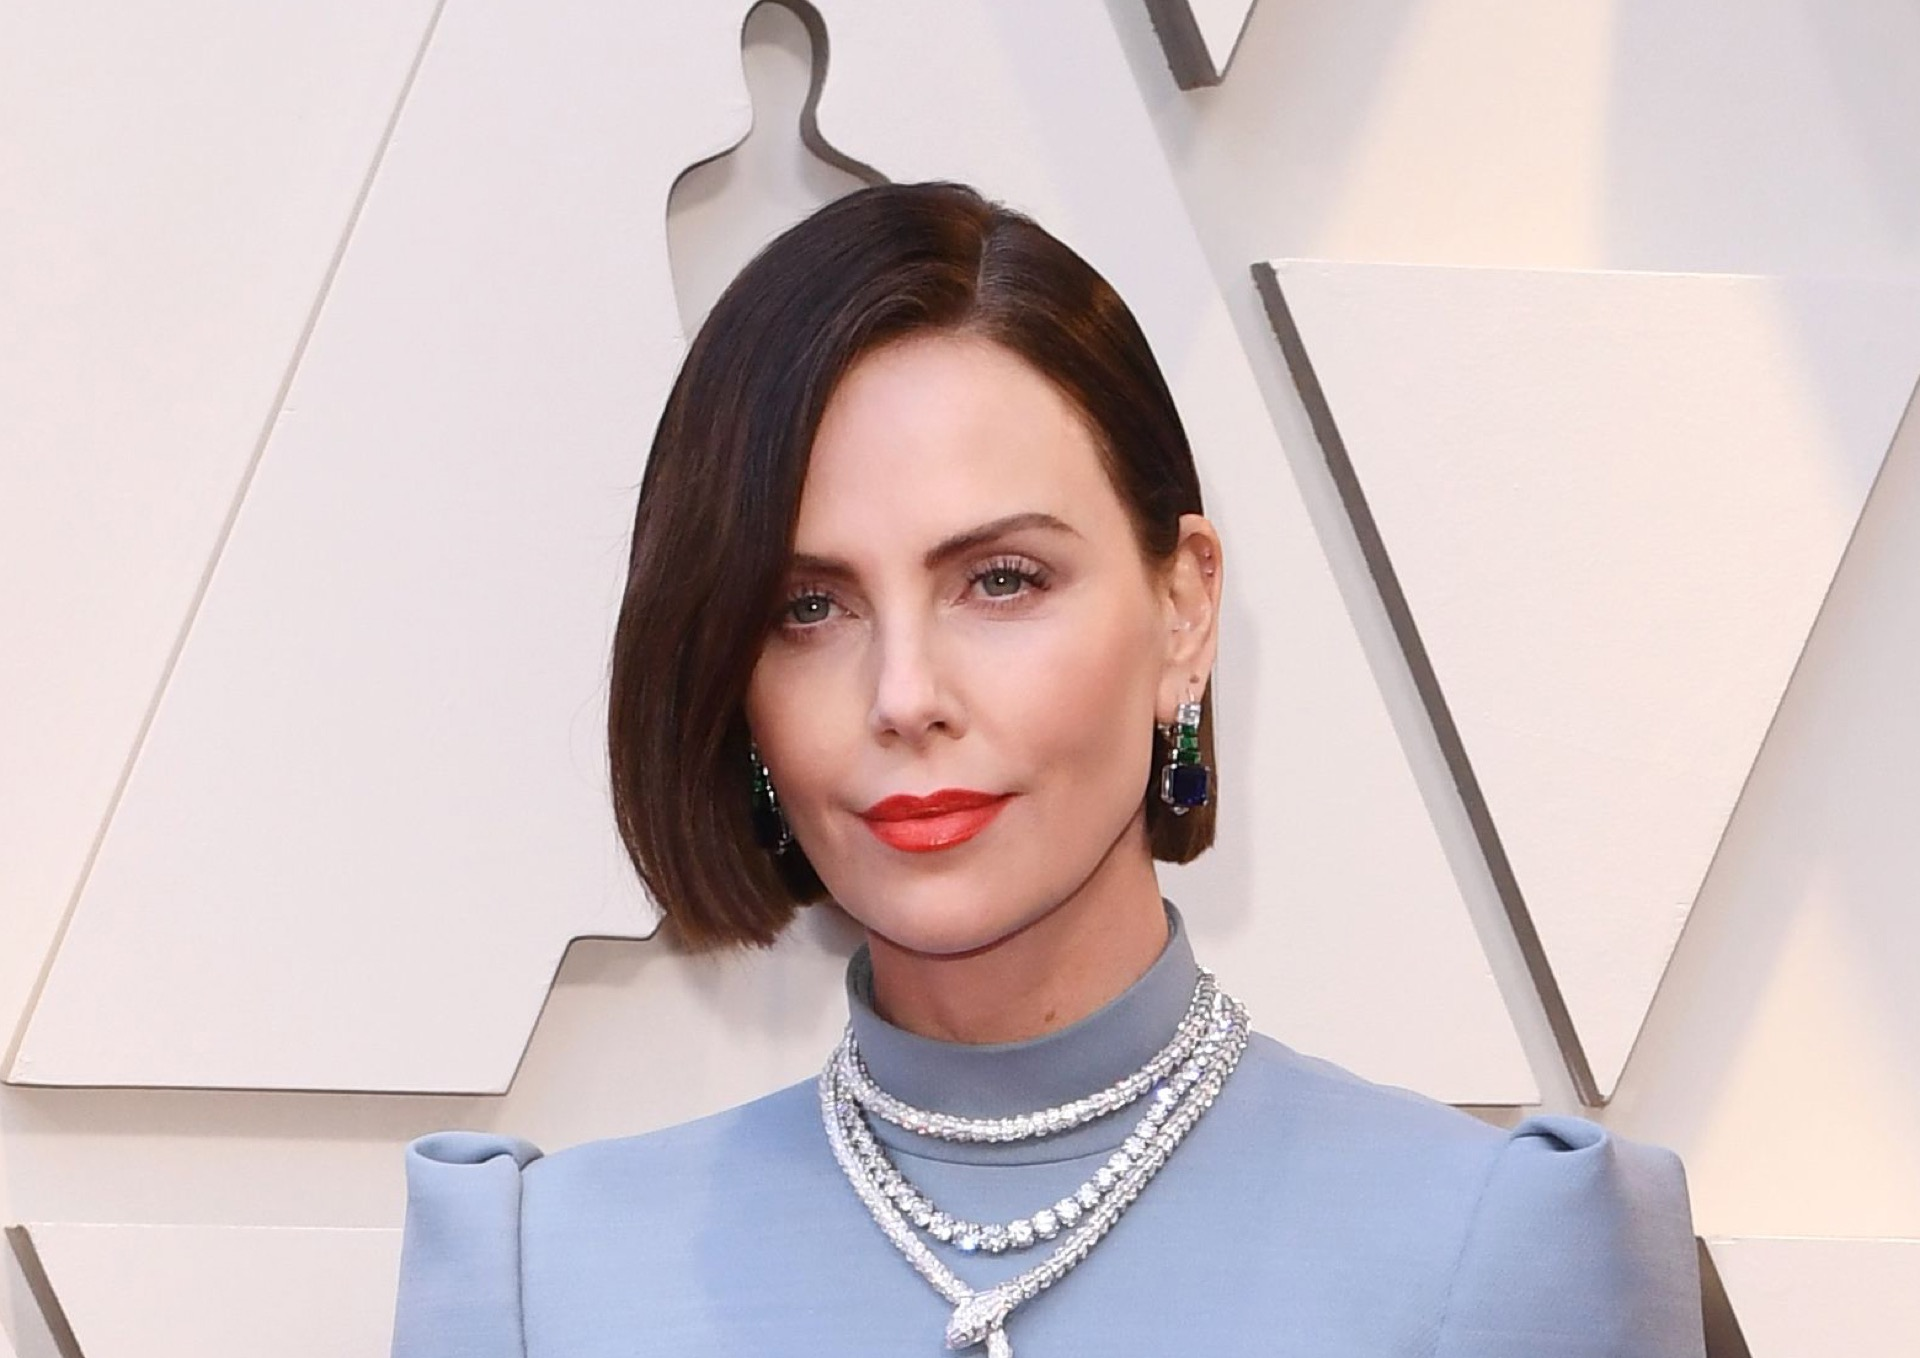 Mandatory Credit: Photo by David Fisher/REX/Shutterstock (10112734fz) Charlize Theron 91st Annual Academy Awards, Arrivals, Los Angeles, USA - 24 Feb 2019